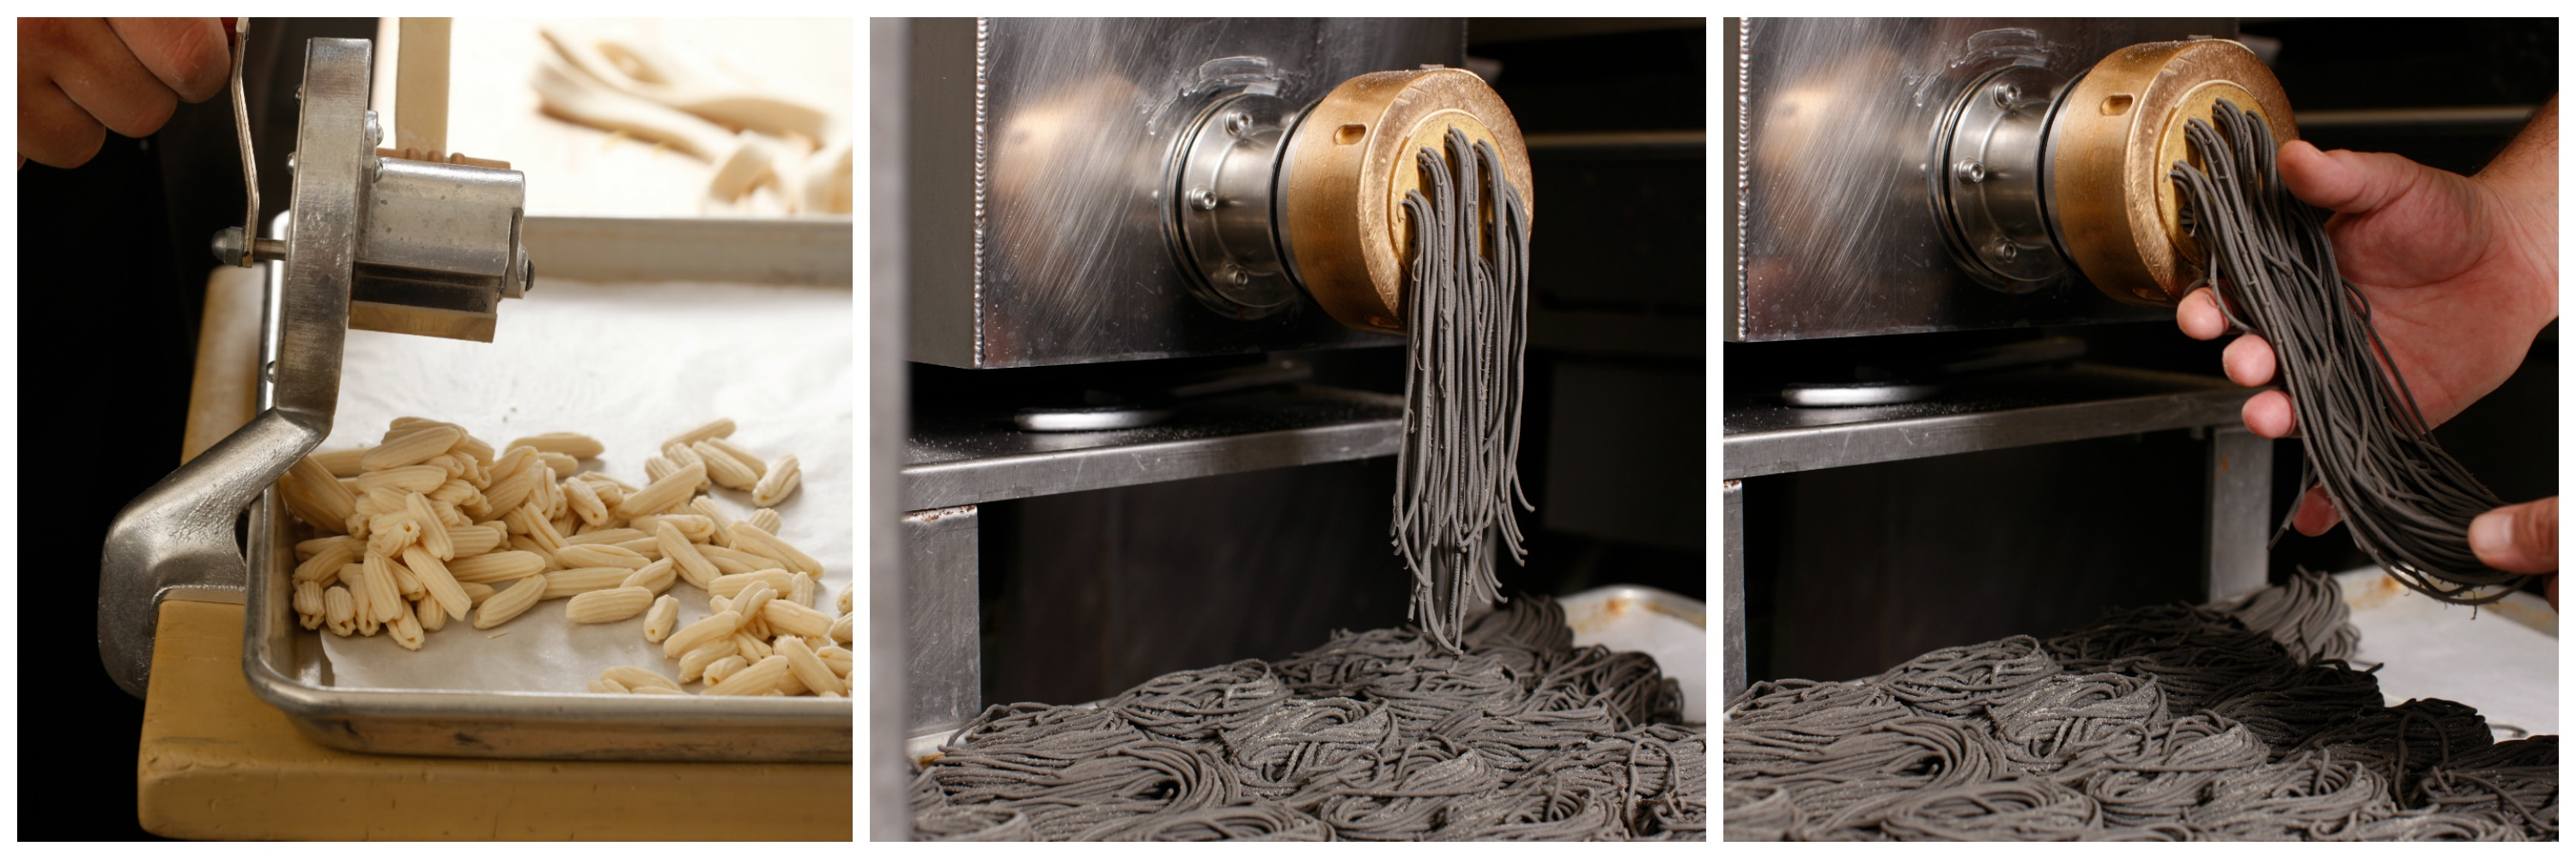 Pasta making process